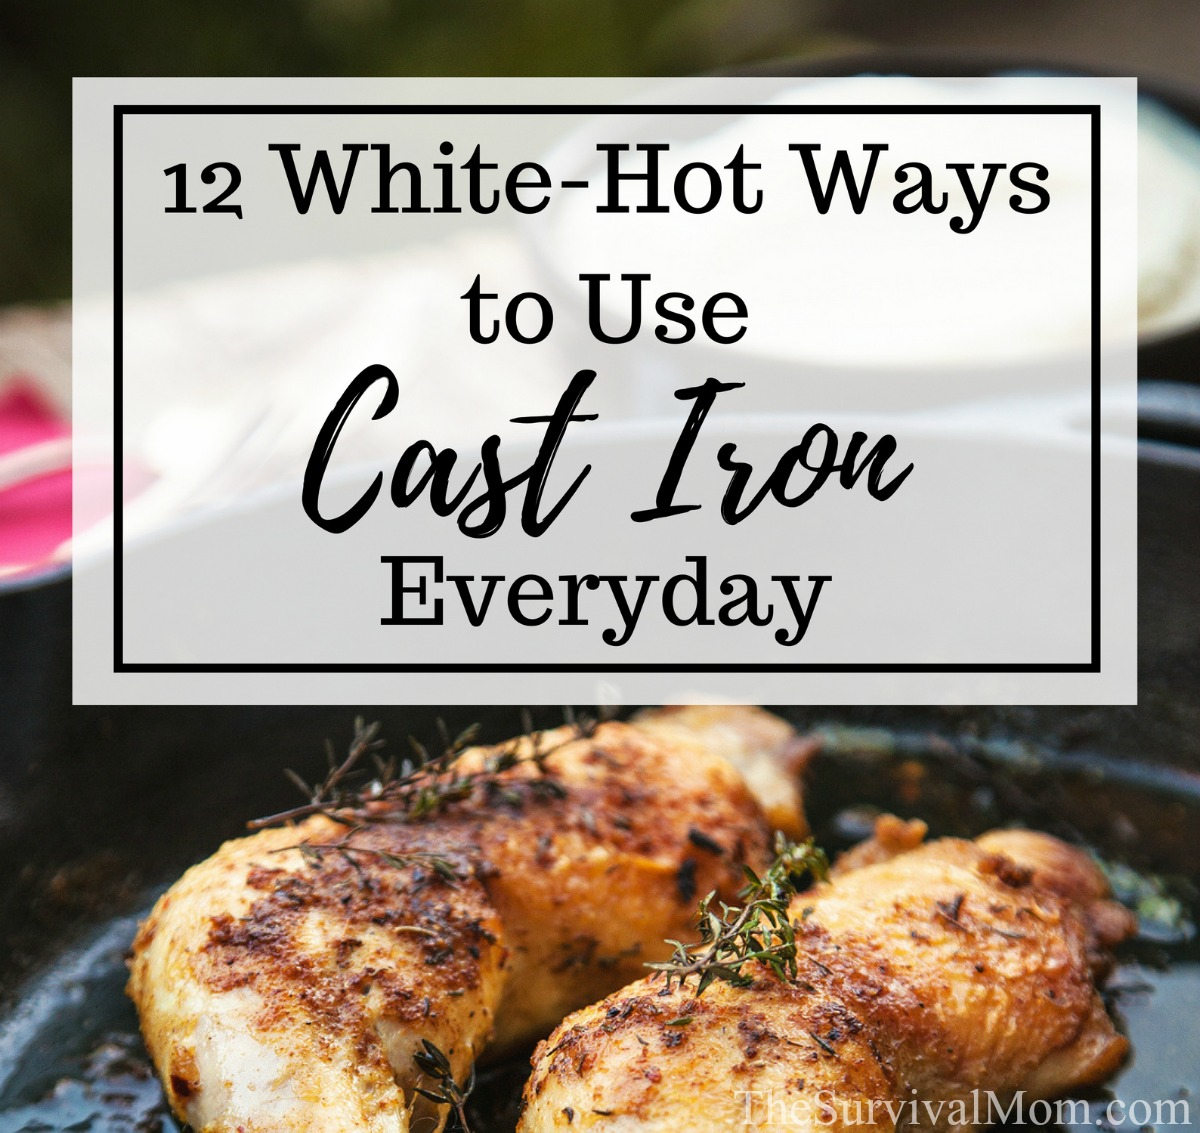 12 White Hot Ways to Use Cast Iron Everyday via The Survival Mom